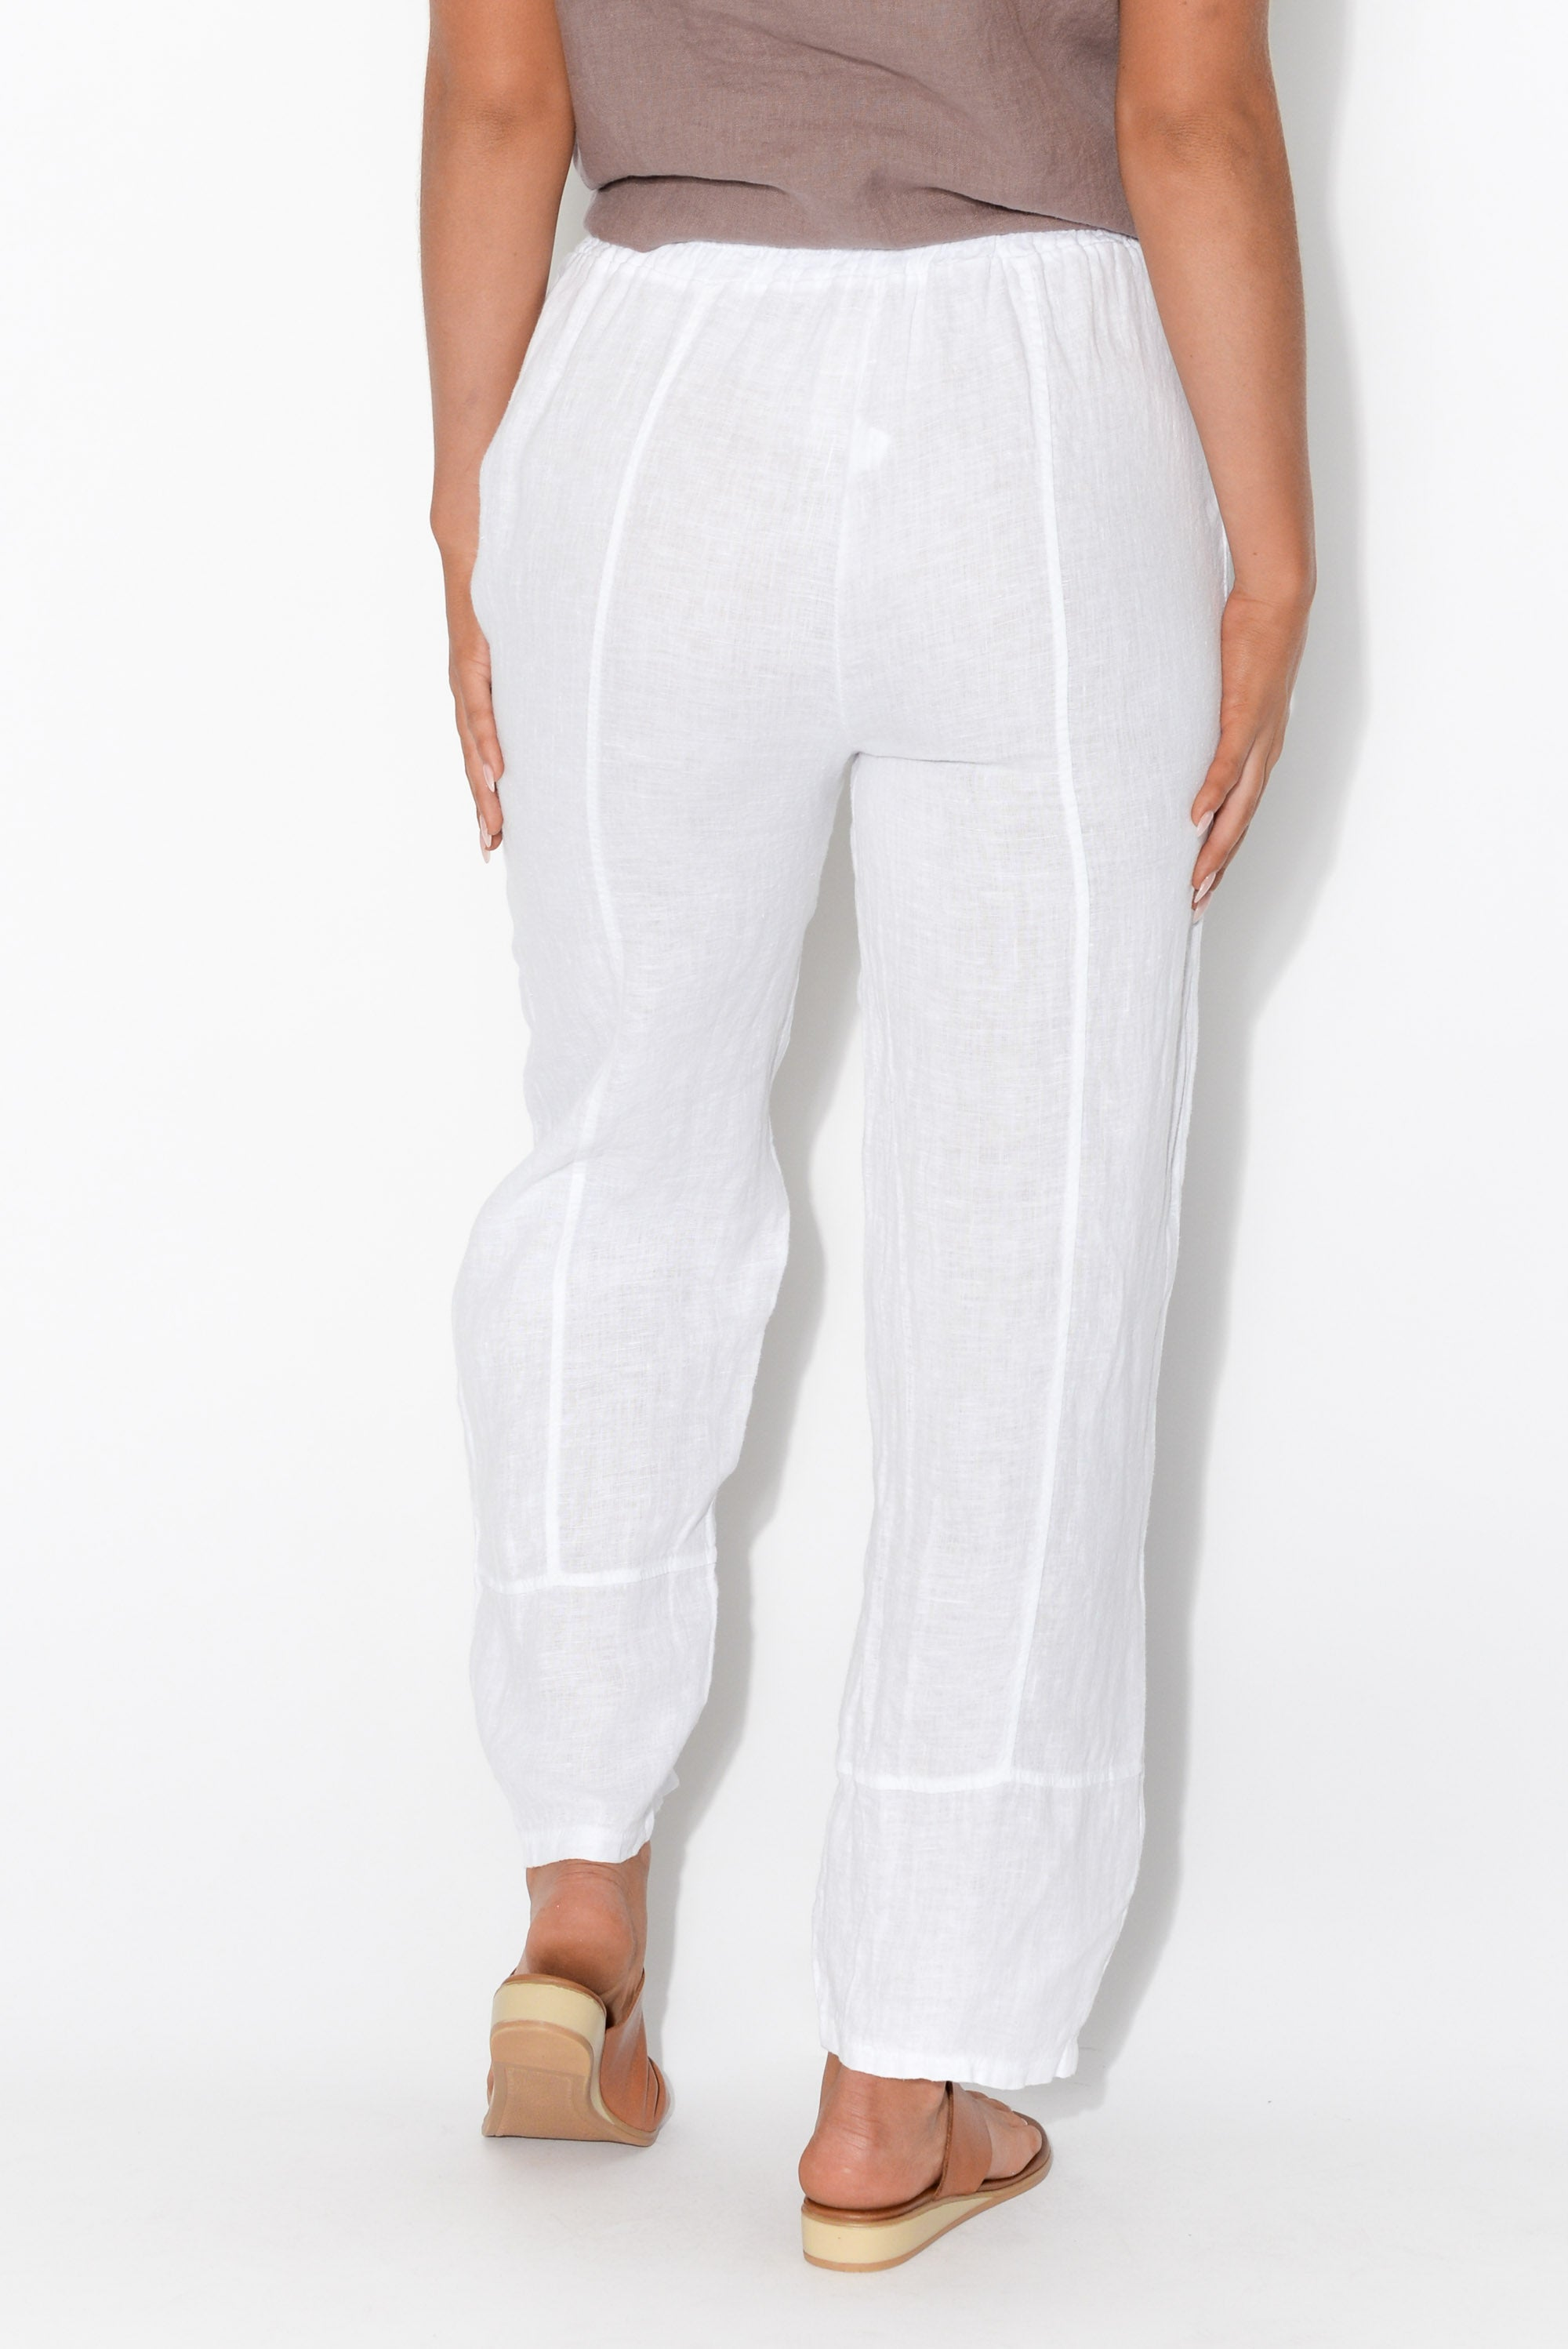 Haisley White Linen Button Pant